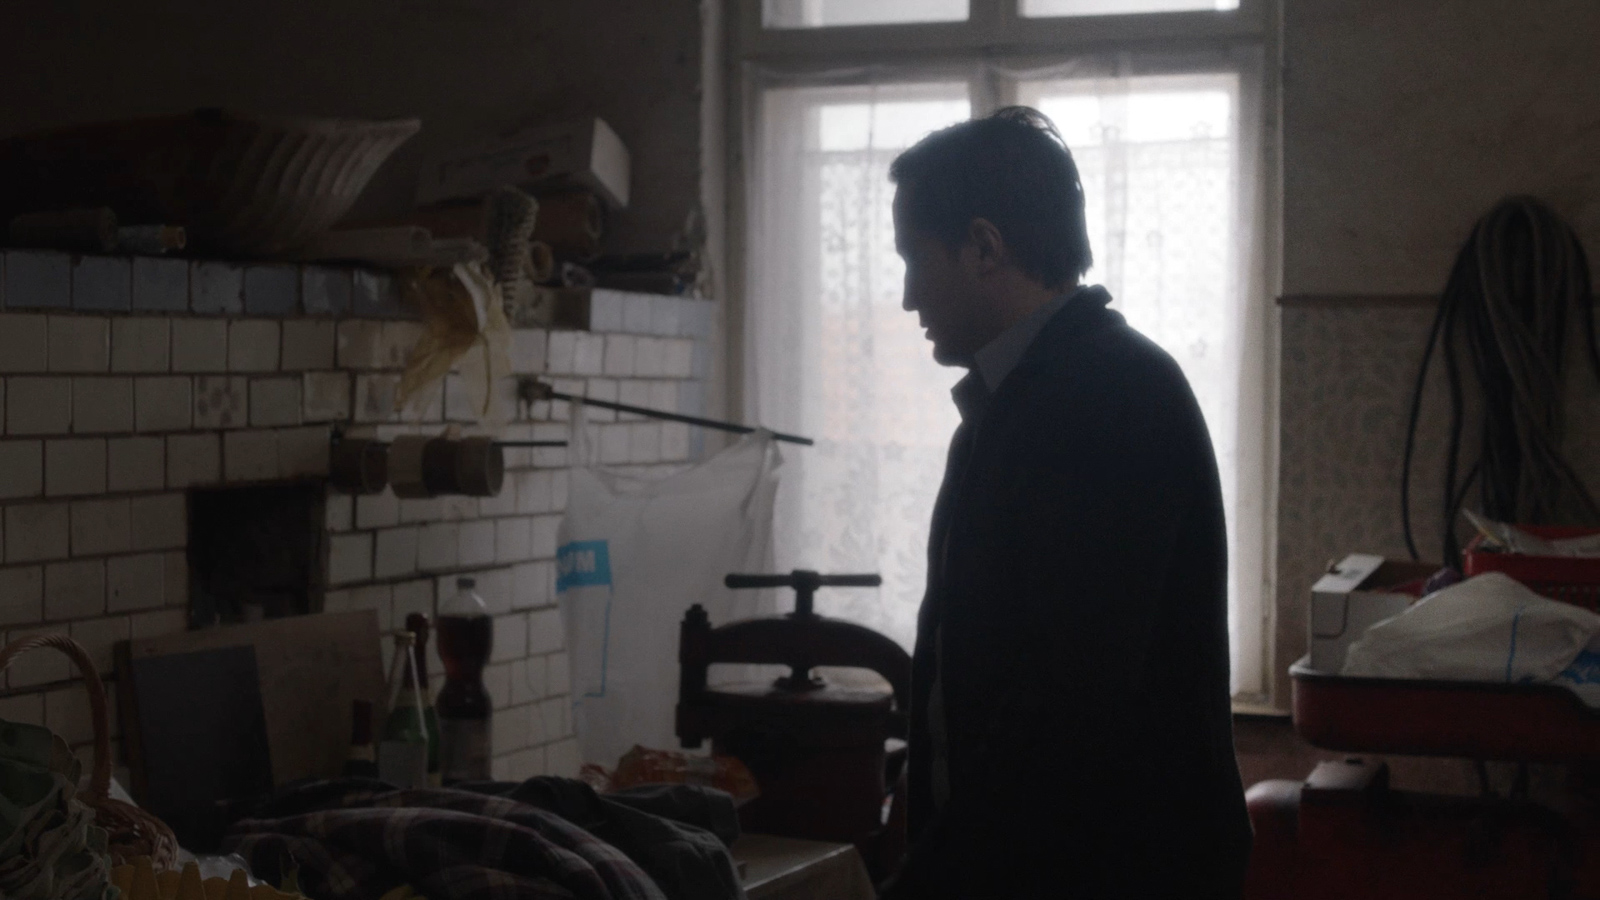 The Visit, Der Besuch, Short Fiction 5′, Cinematographer: Katharina Schelling, Director: Gian Suhner , Production: German Film and Television Academy, 1:1.85 2K Arri Amira + Zeiss Ultra Prime Lenses, www.katharinaschelling.com